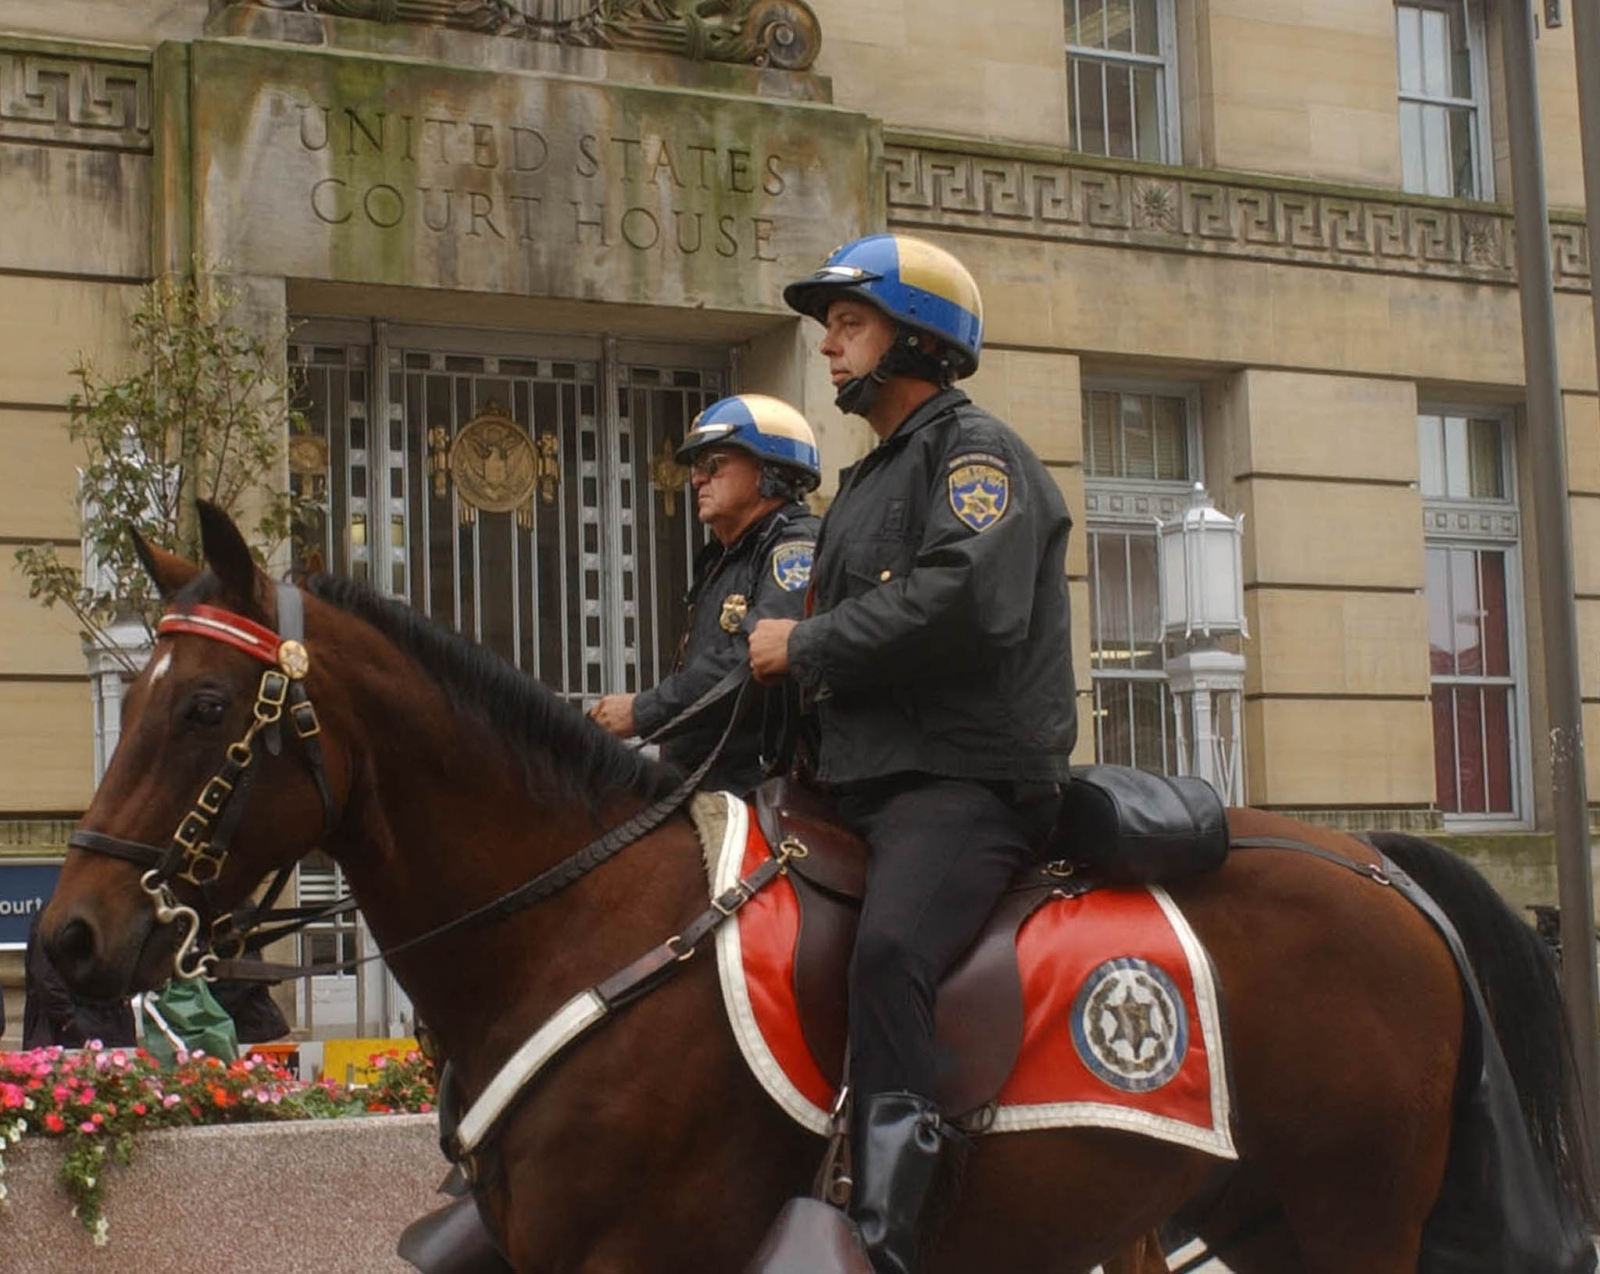 Erie County mounted sheriffs